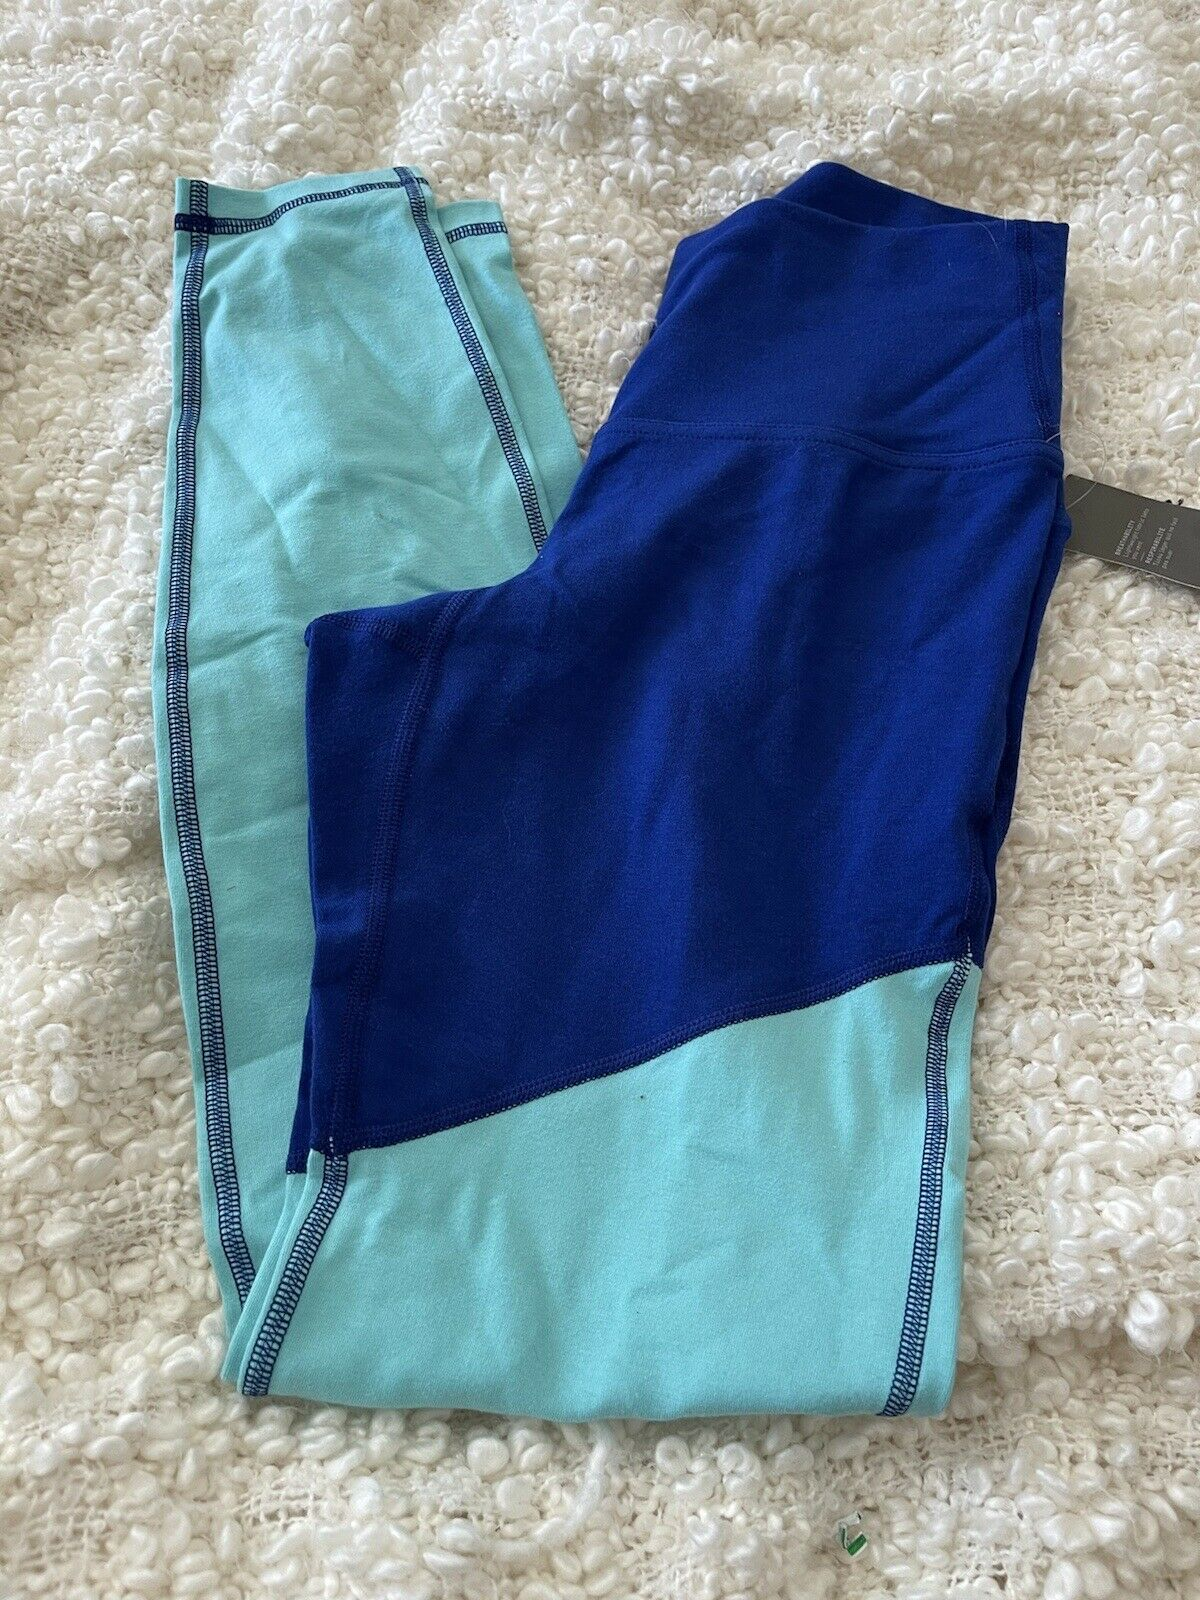 Old Navy Active M Go Dry Yoga Electric Navy Blue Leggings High Rise 80s Aerobic